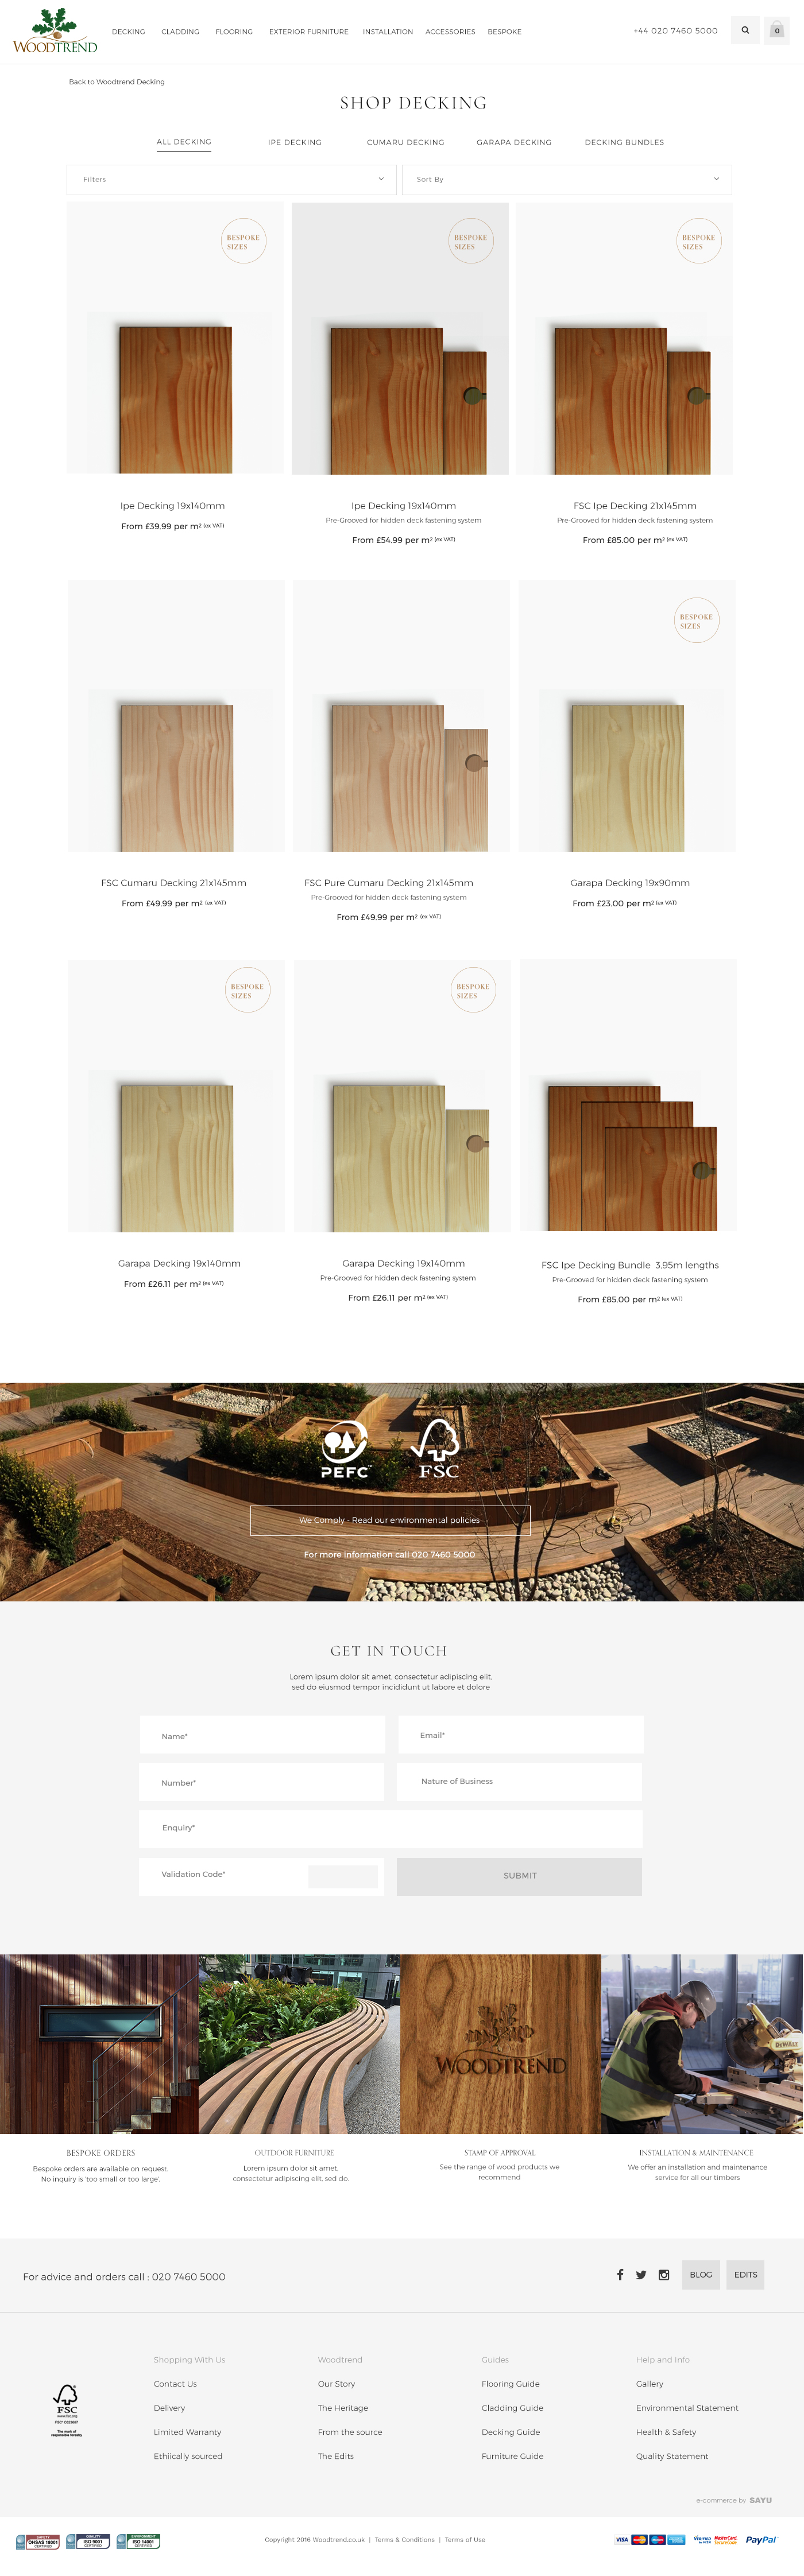 woodtrend.co.uk